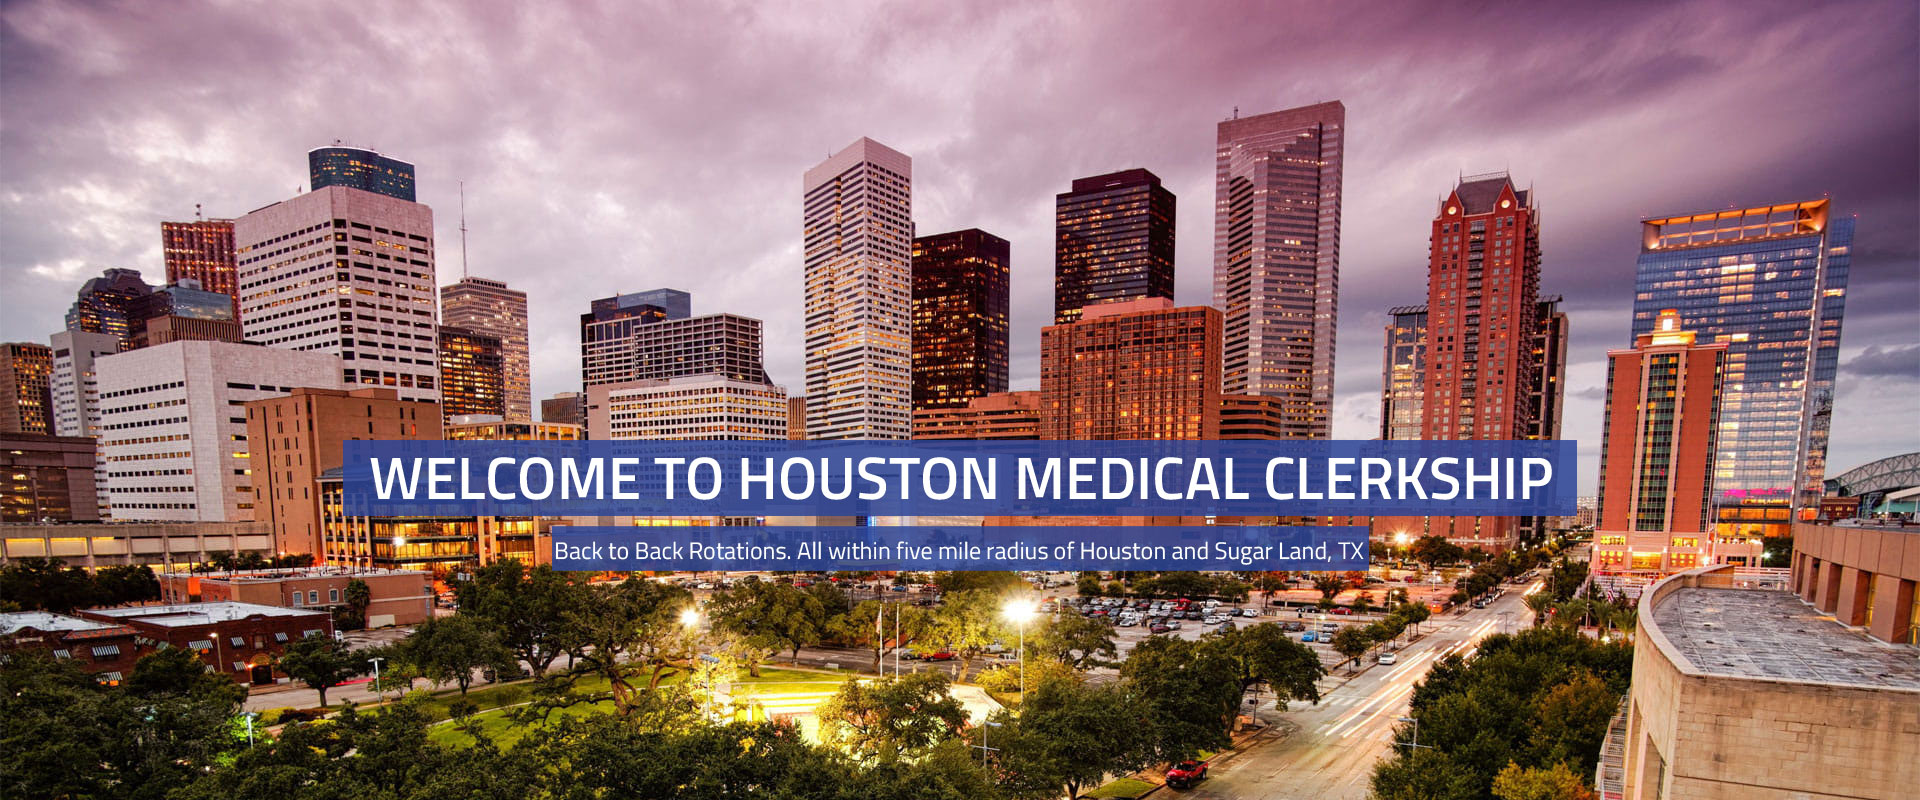 Houston Medical Clerkship